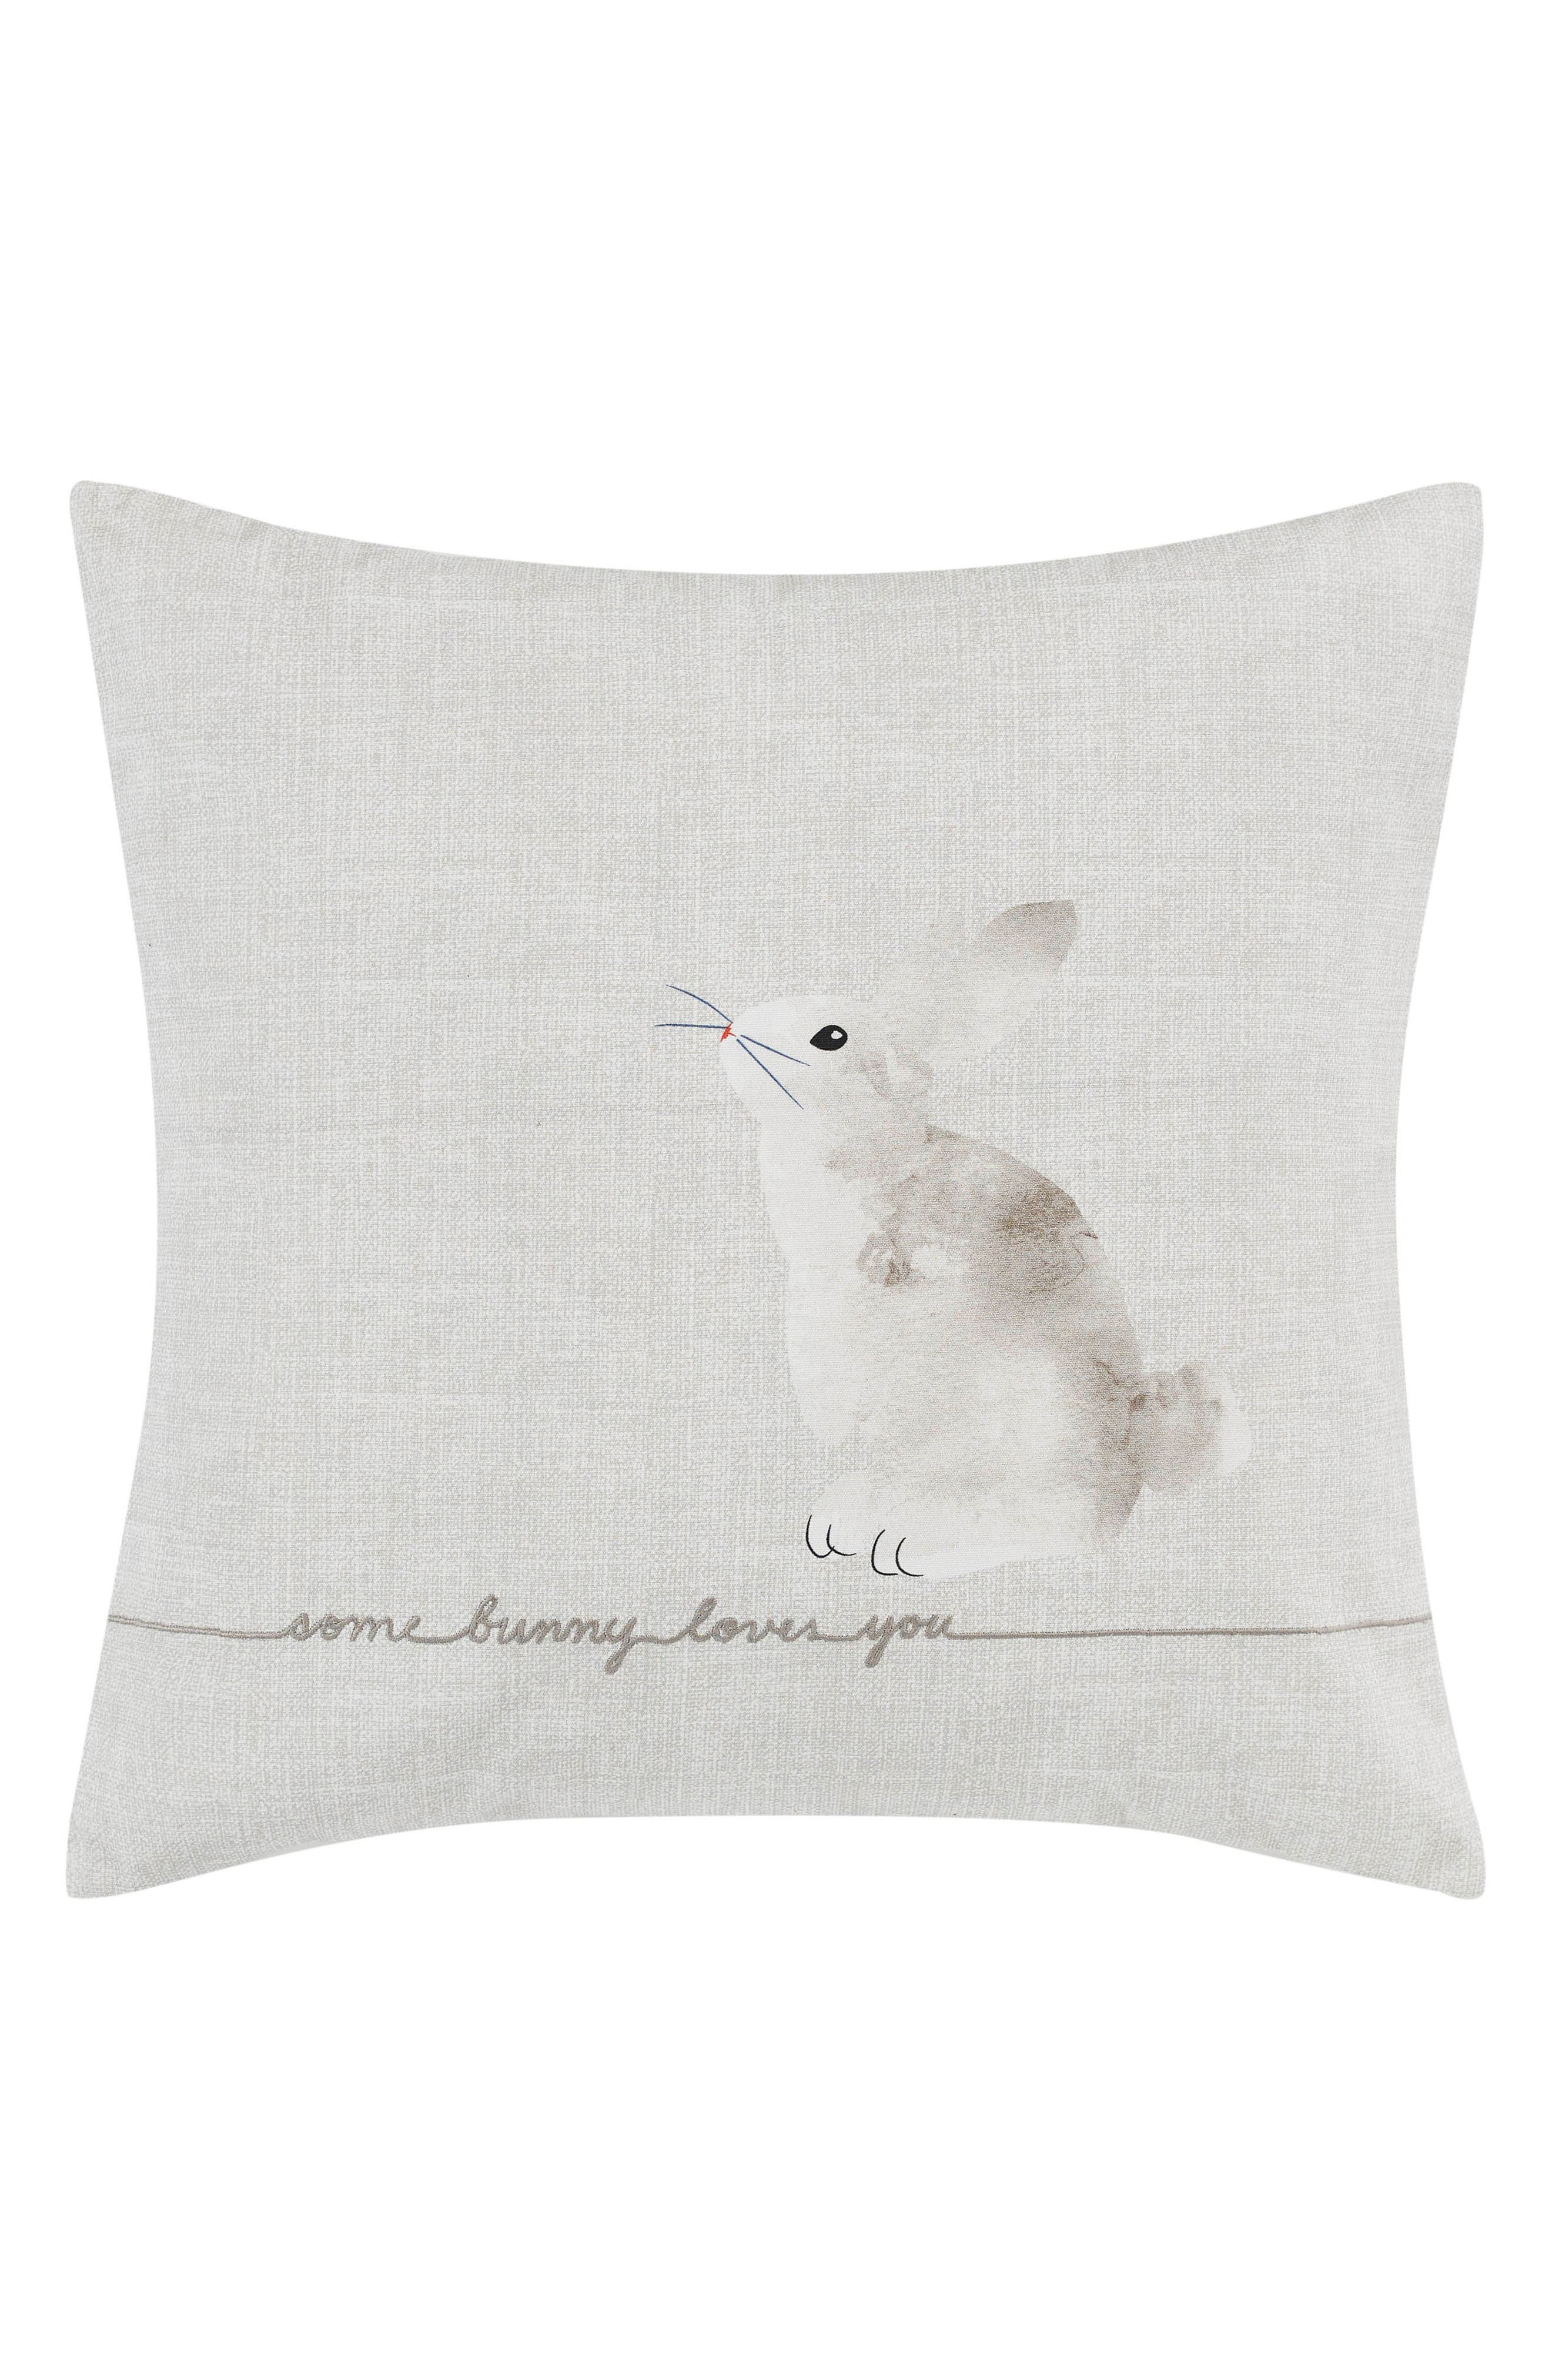 Claremont Some Bunny Loves You Accent Pillow,                             Main thumbnail 1, color,                             Pastel Grey